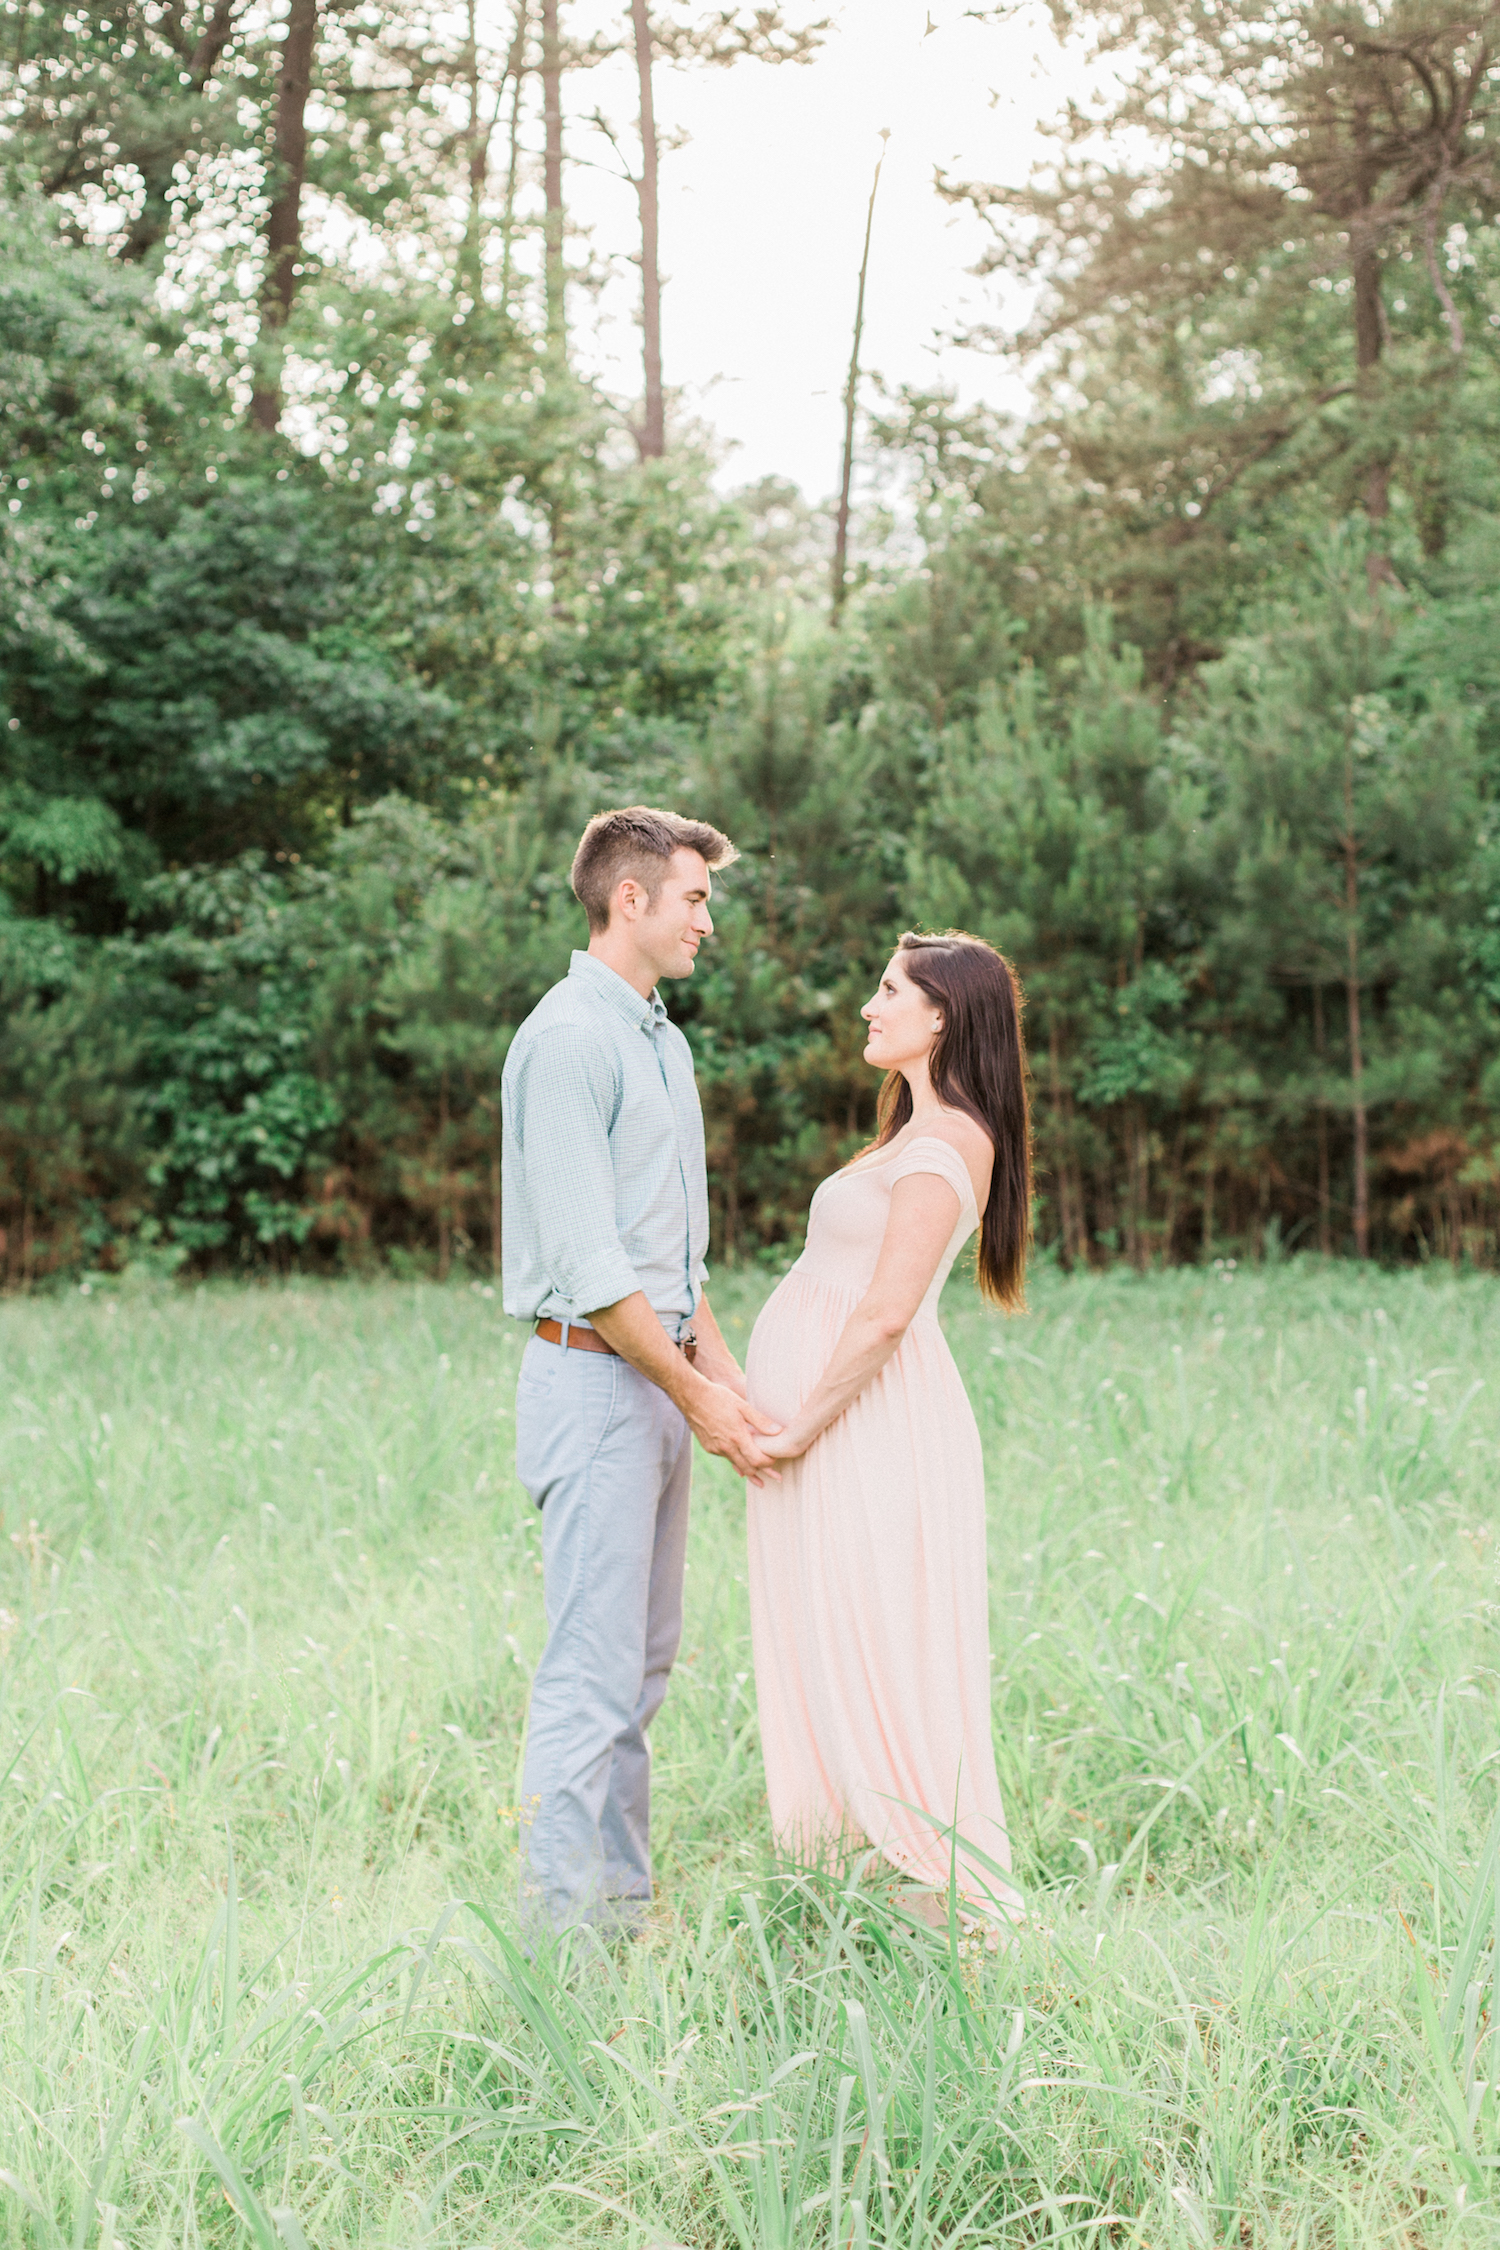 Spring time maternity session with blush pink dress and pastel outfits.